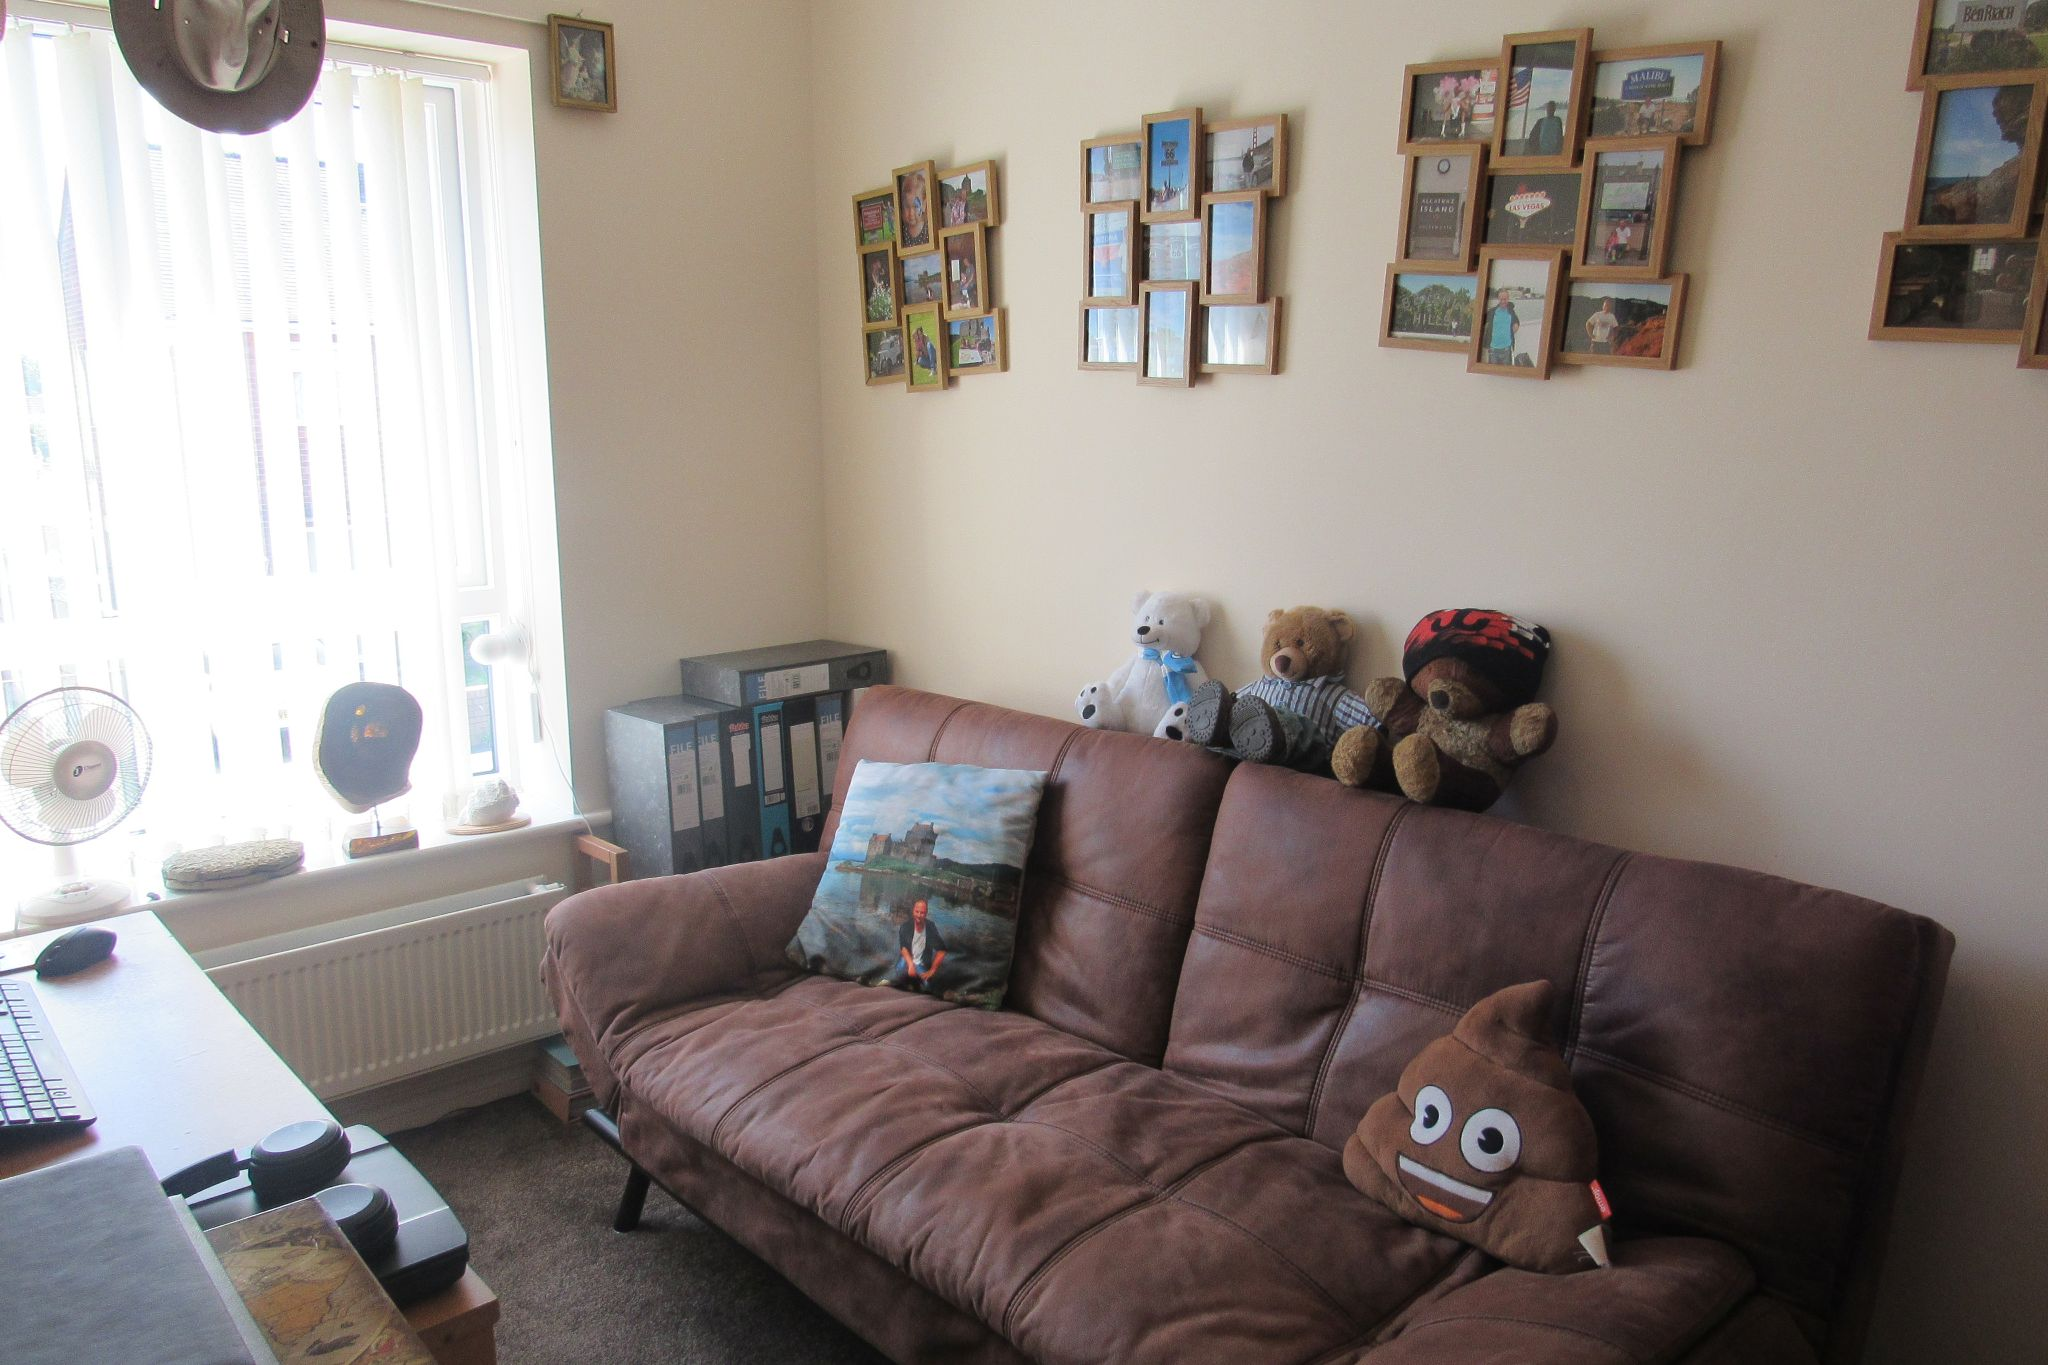 3 bedroom semi-detached house SSTC in Manchester - Photograph 13.